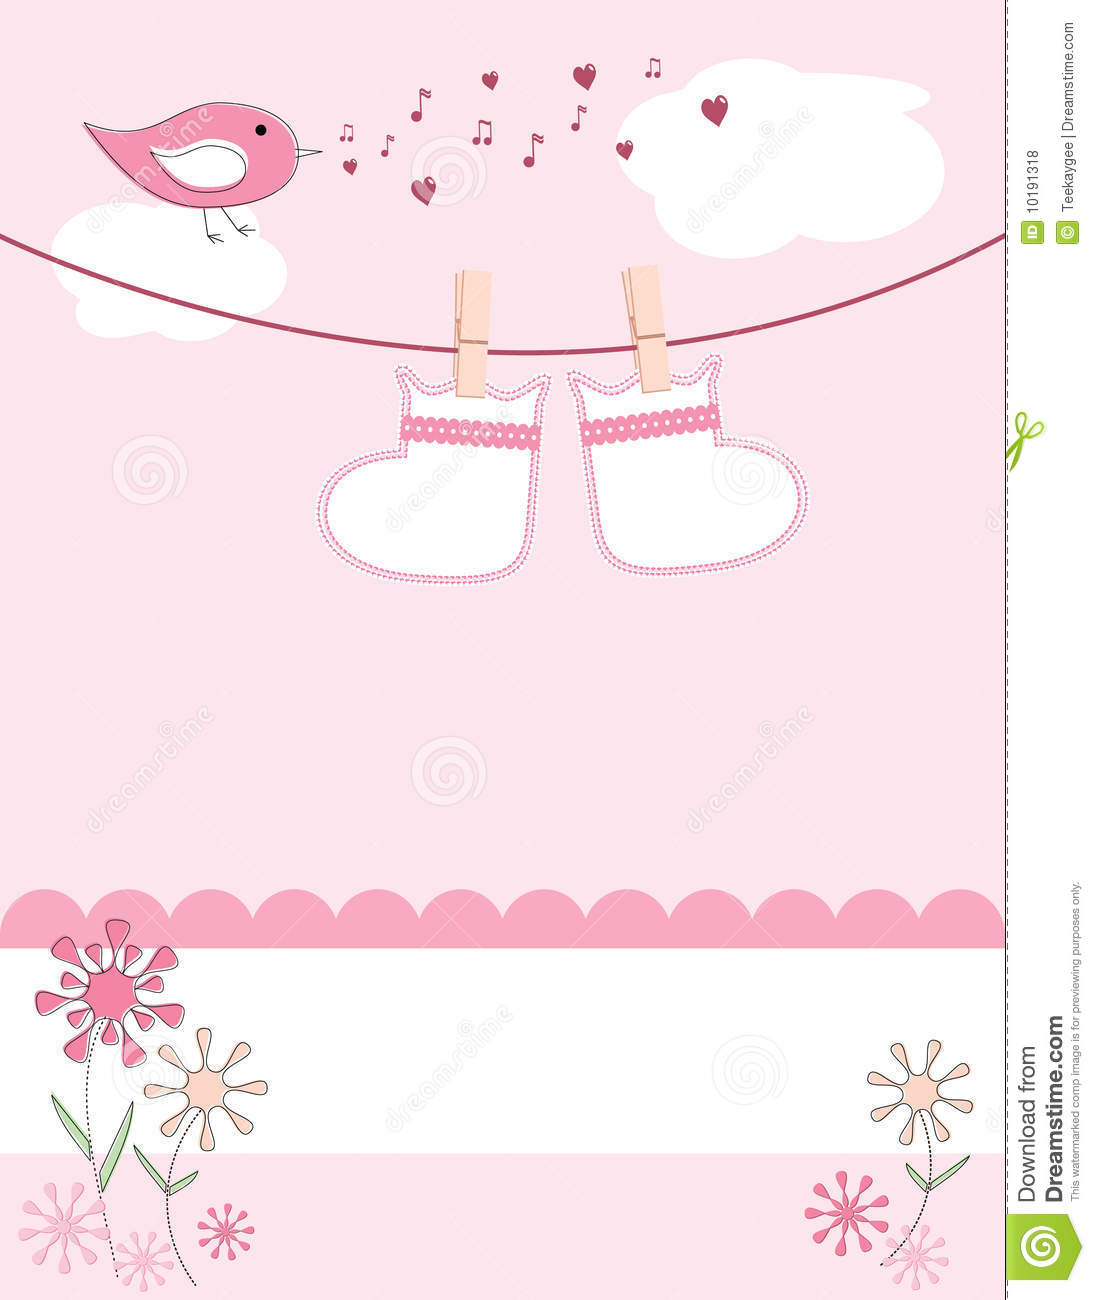 baby girl arrival announcement card royalty free stock baby girl clothesline clipart baby shower clothesline clipart